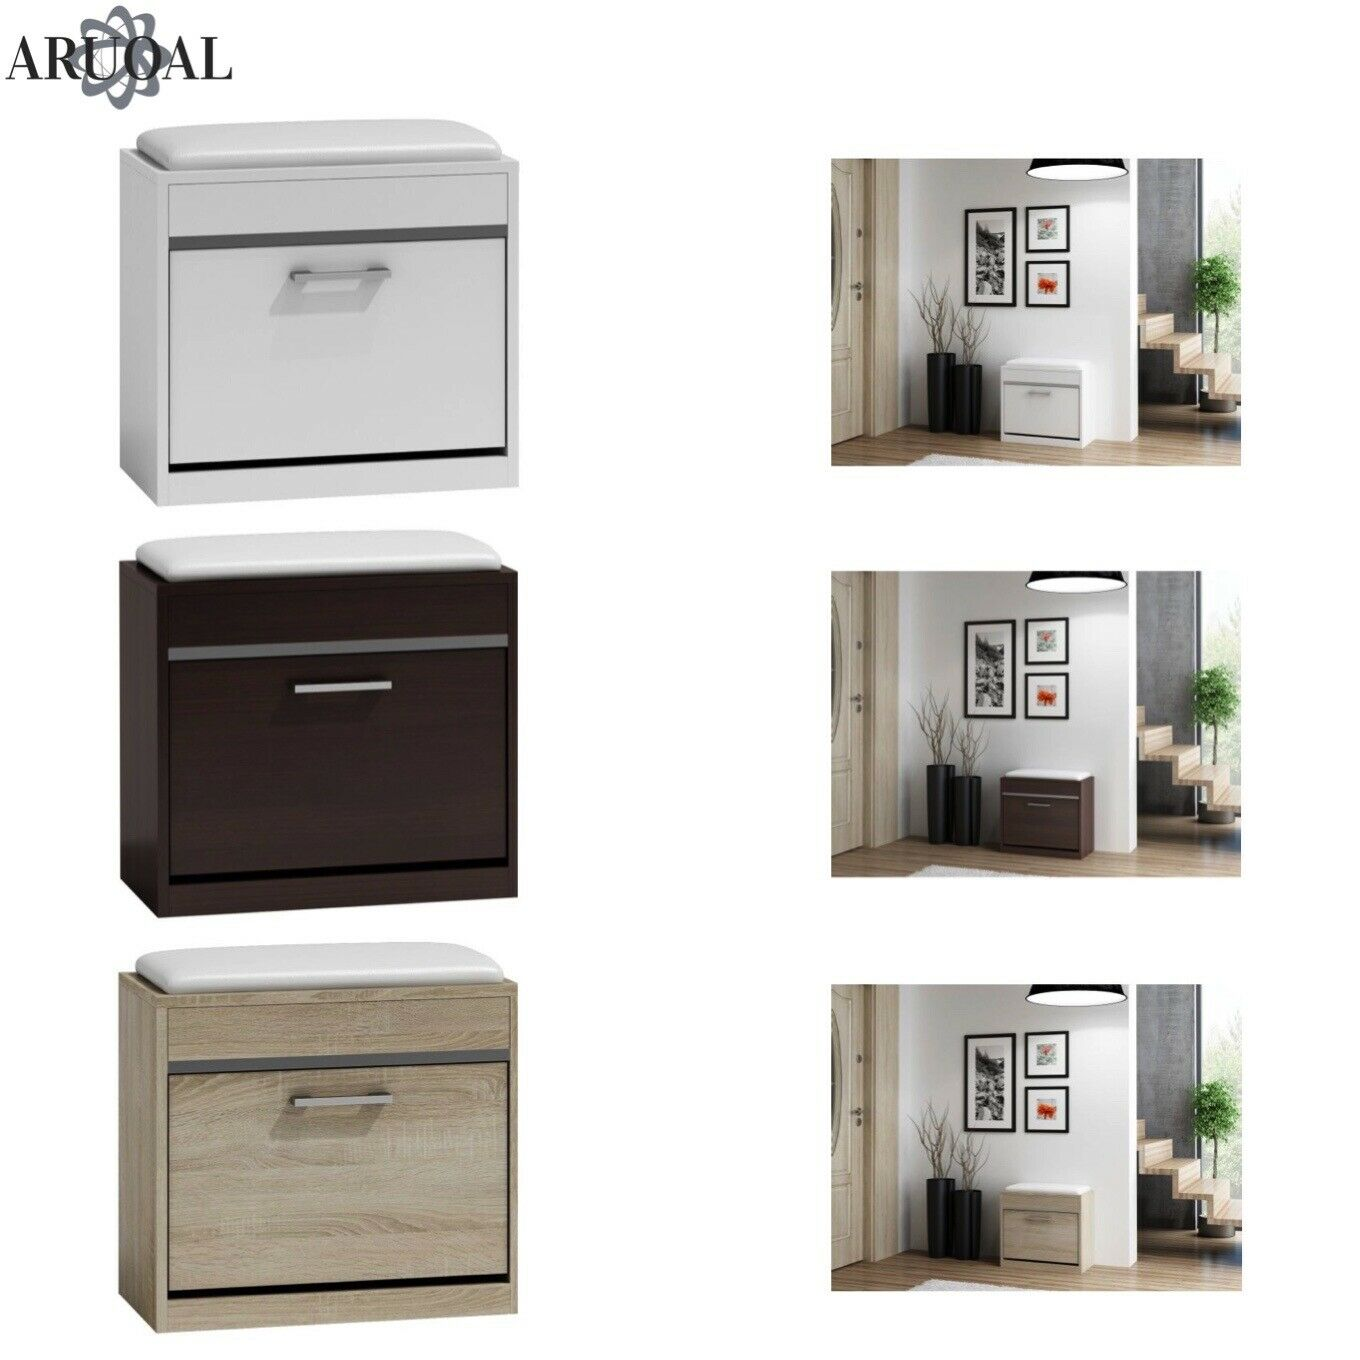 ARUOAL (MILANO) shoes Cabinet, Storage Box with Seat Various Colours 60 x 53 x 30